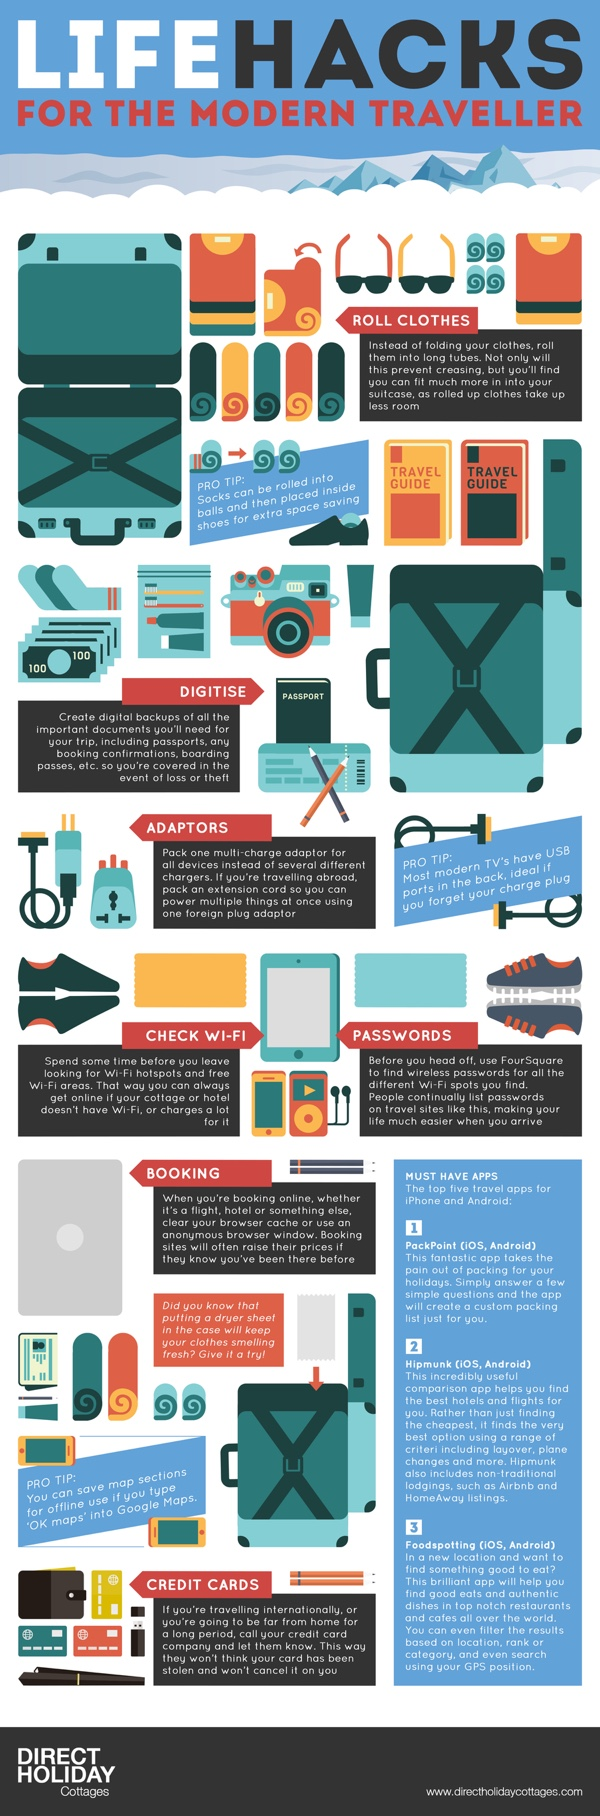 life-hacks-for-the-modern-traveller-infographic.jpg